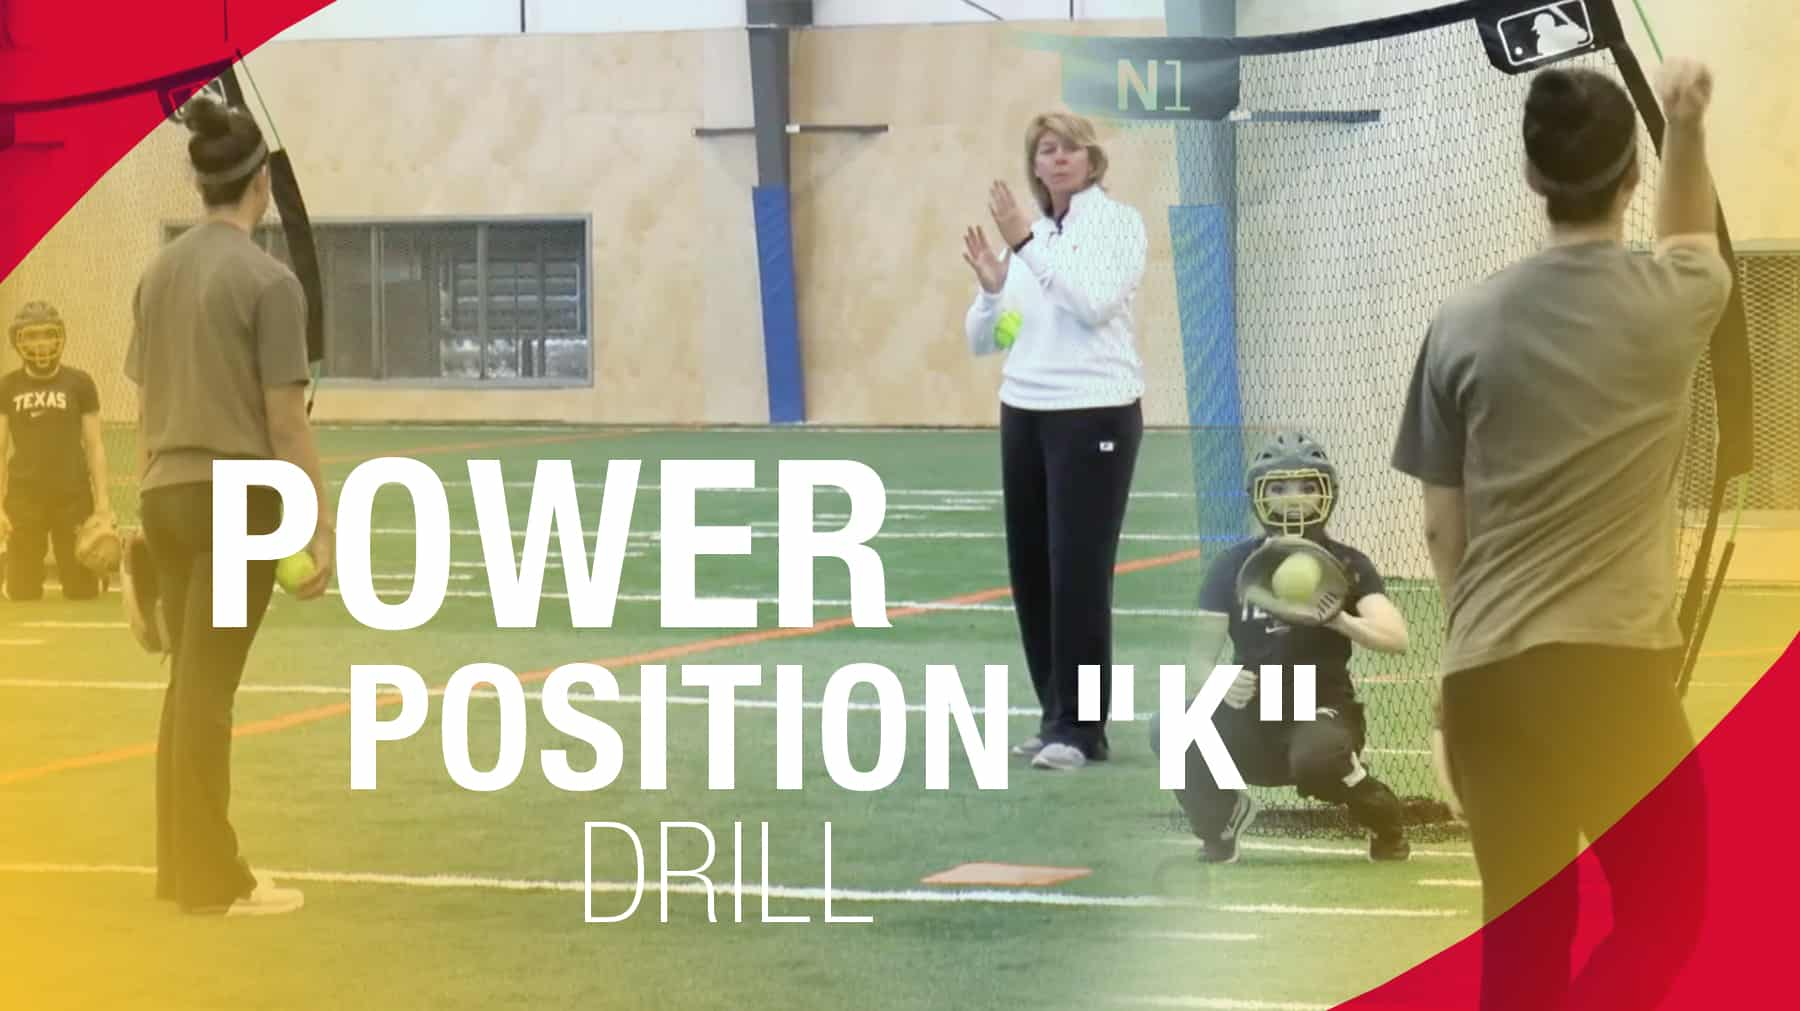 Pitching Power Position K Drill